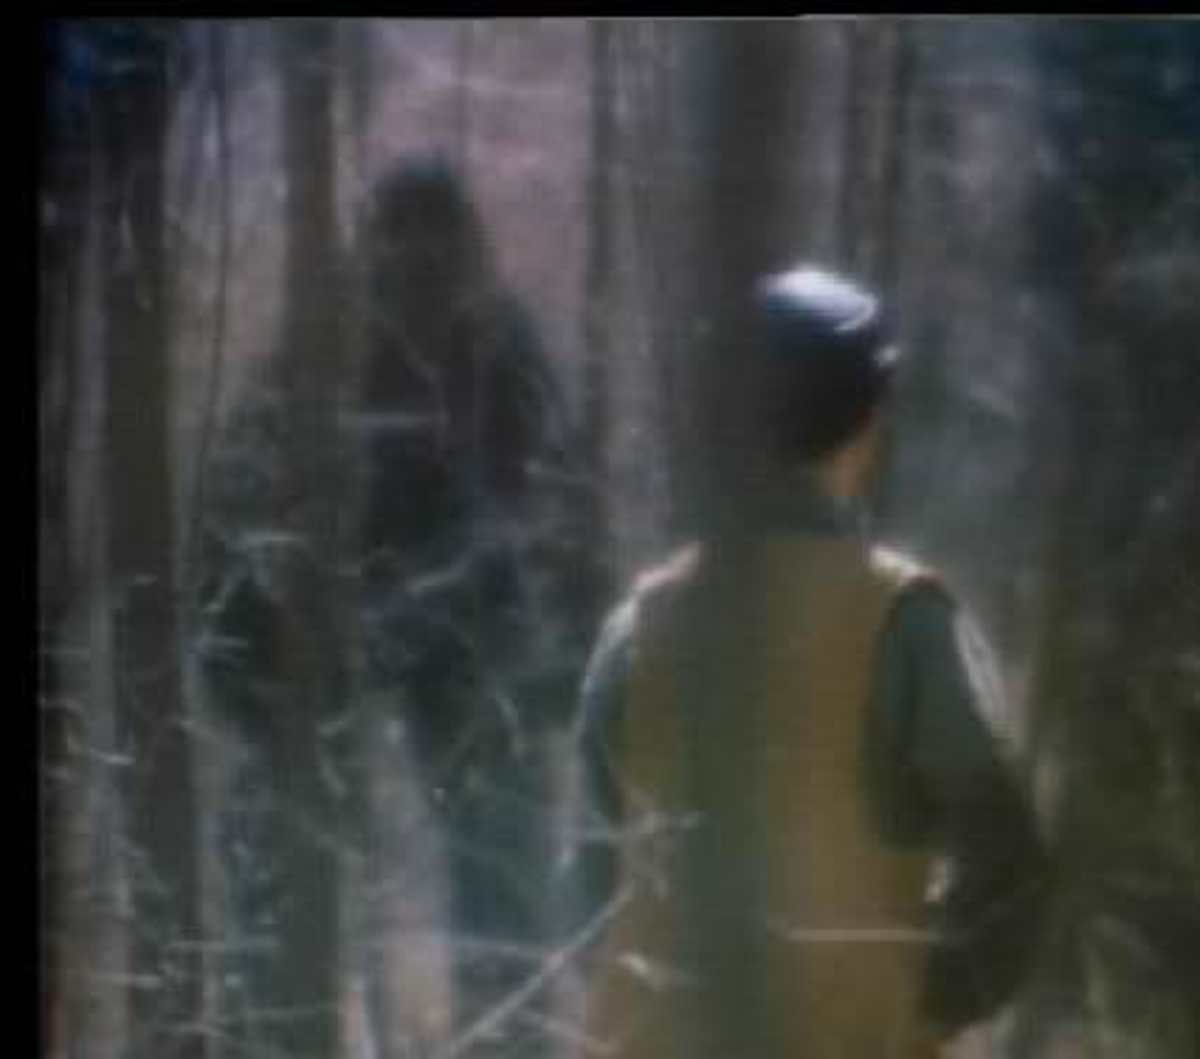 Still from the movie Legend of Boggy Creek showing the creature stalking a young boy out hunting